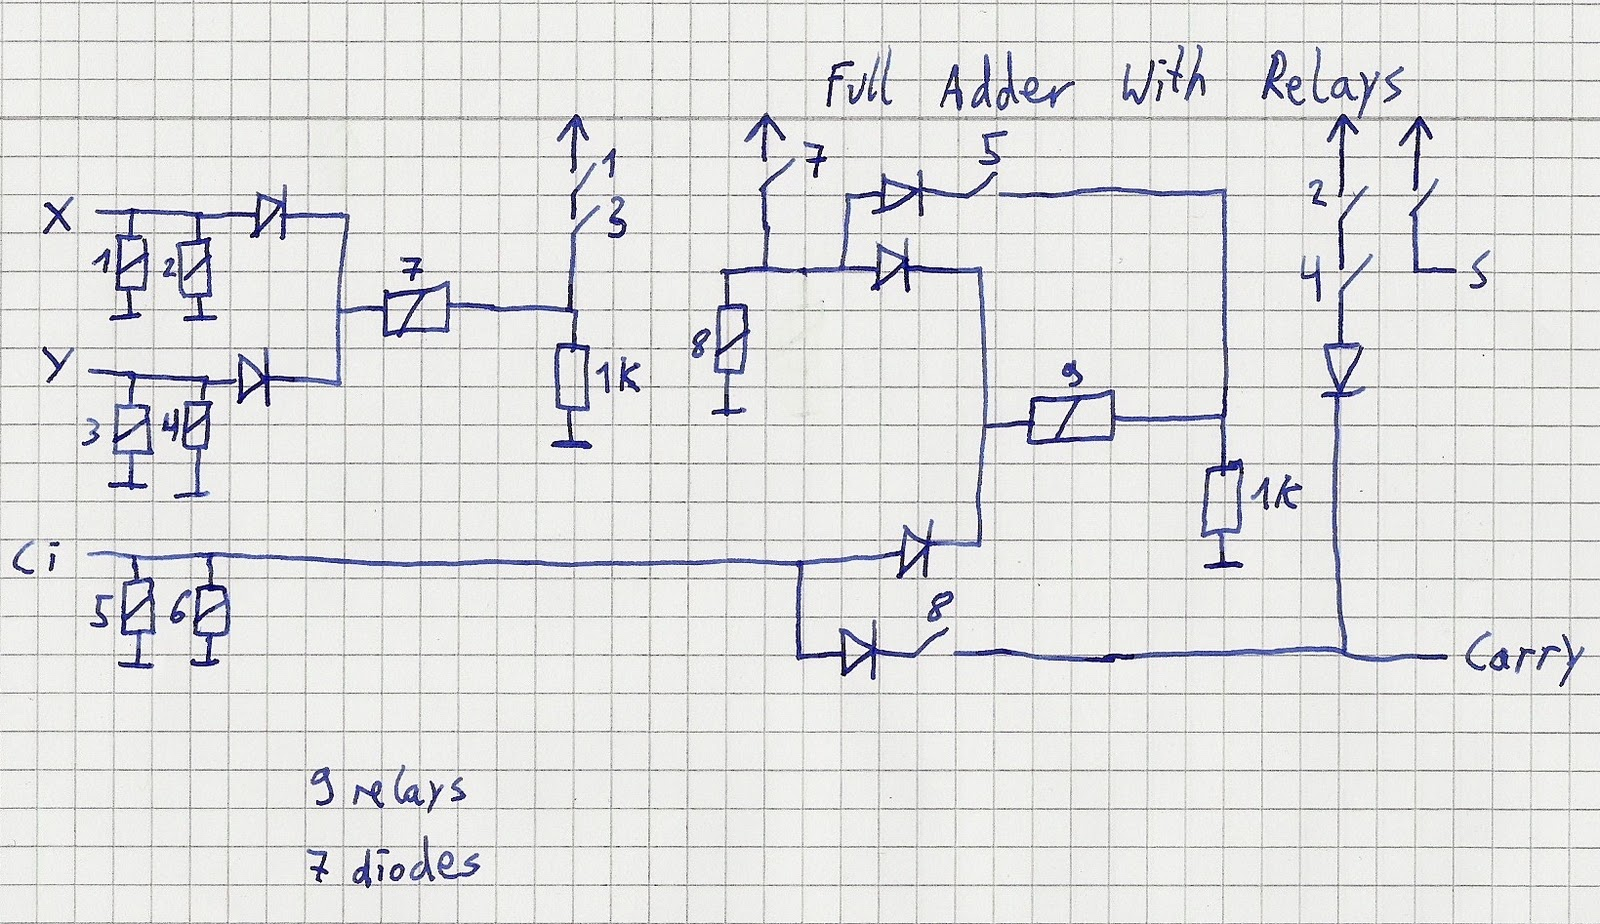 Thoughts Of A Nerd Full Adder With Relays